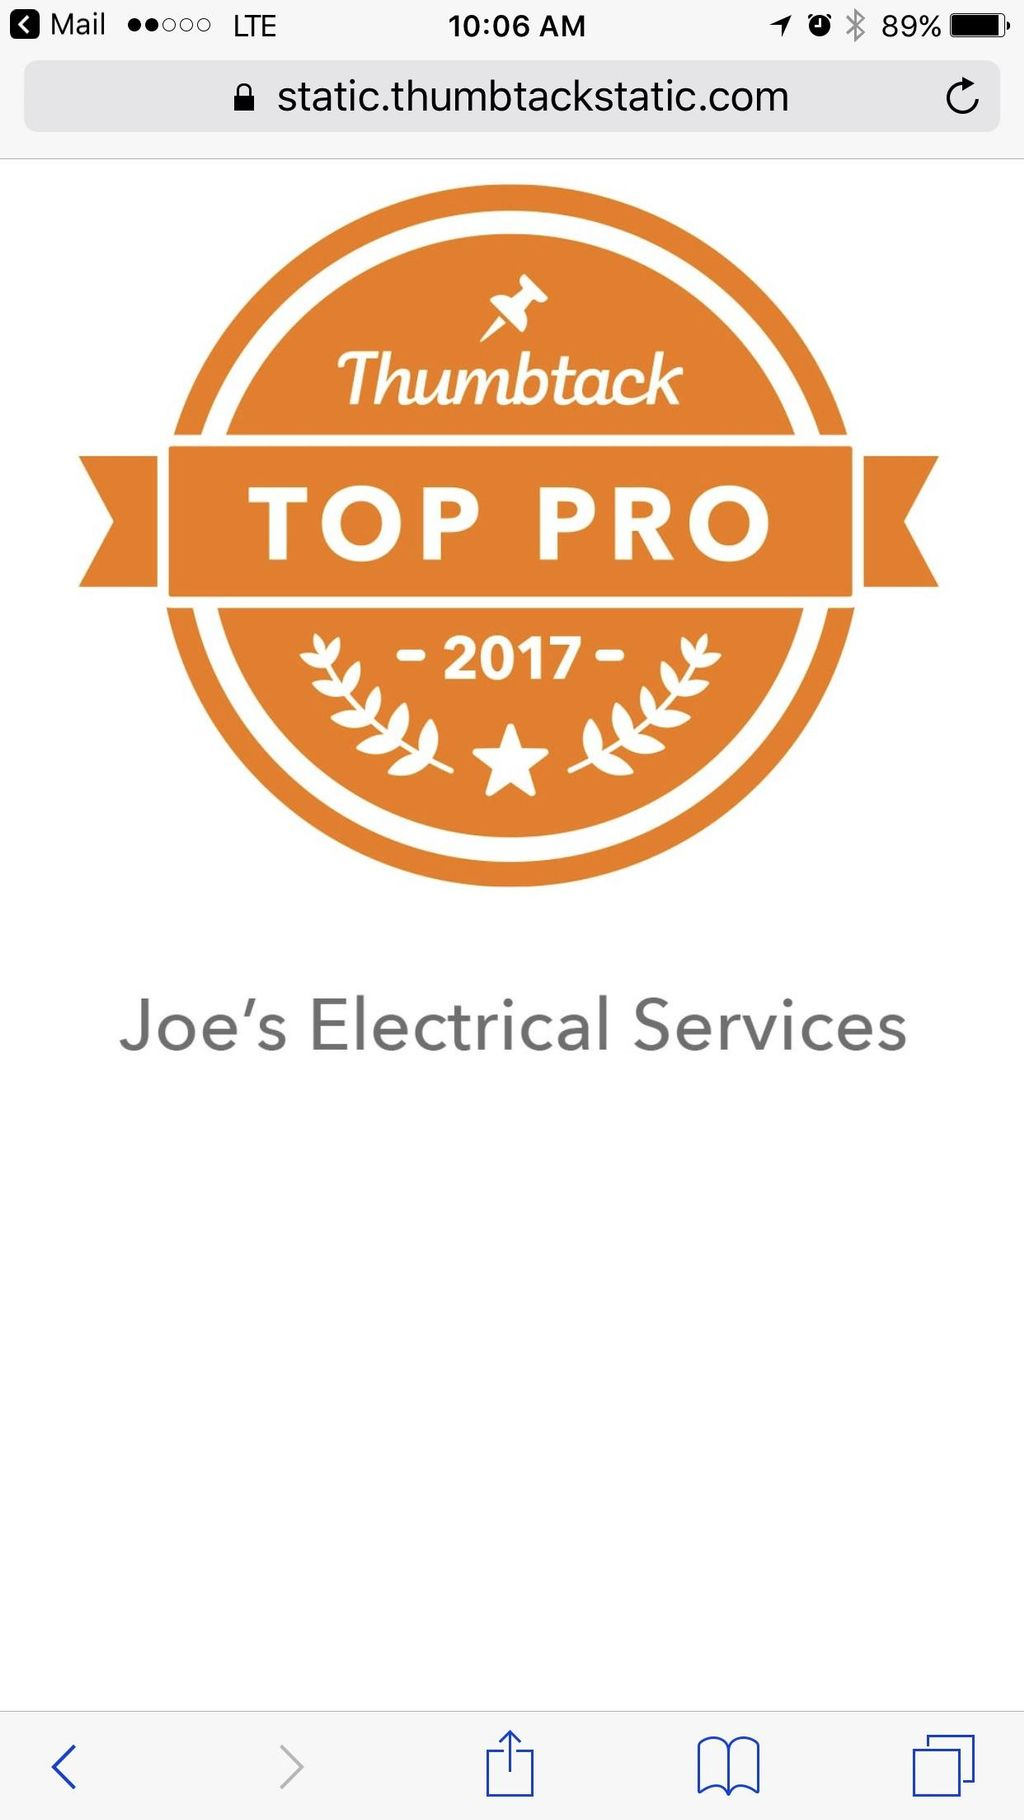 Joe's Electrical Services